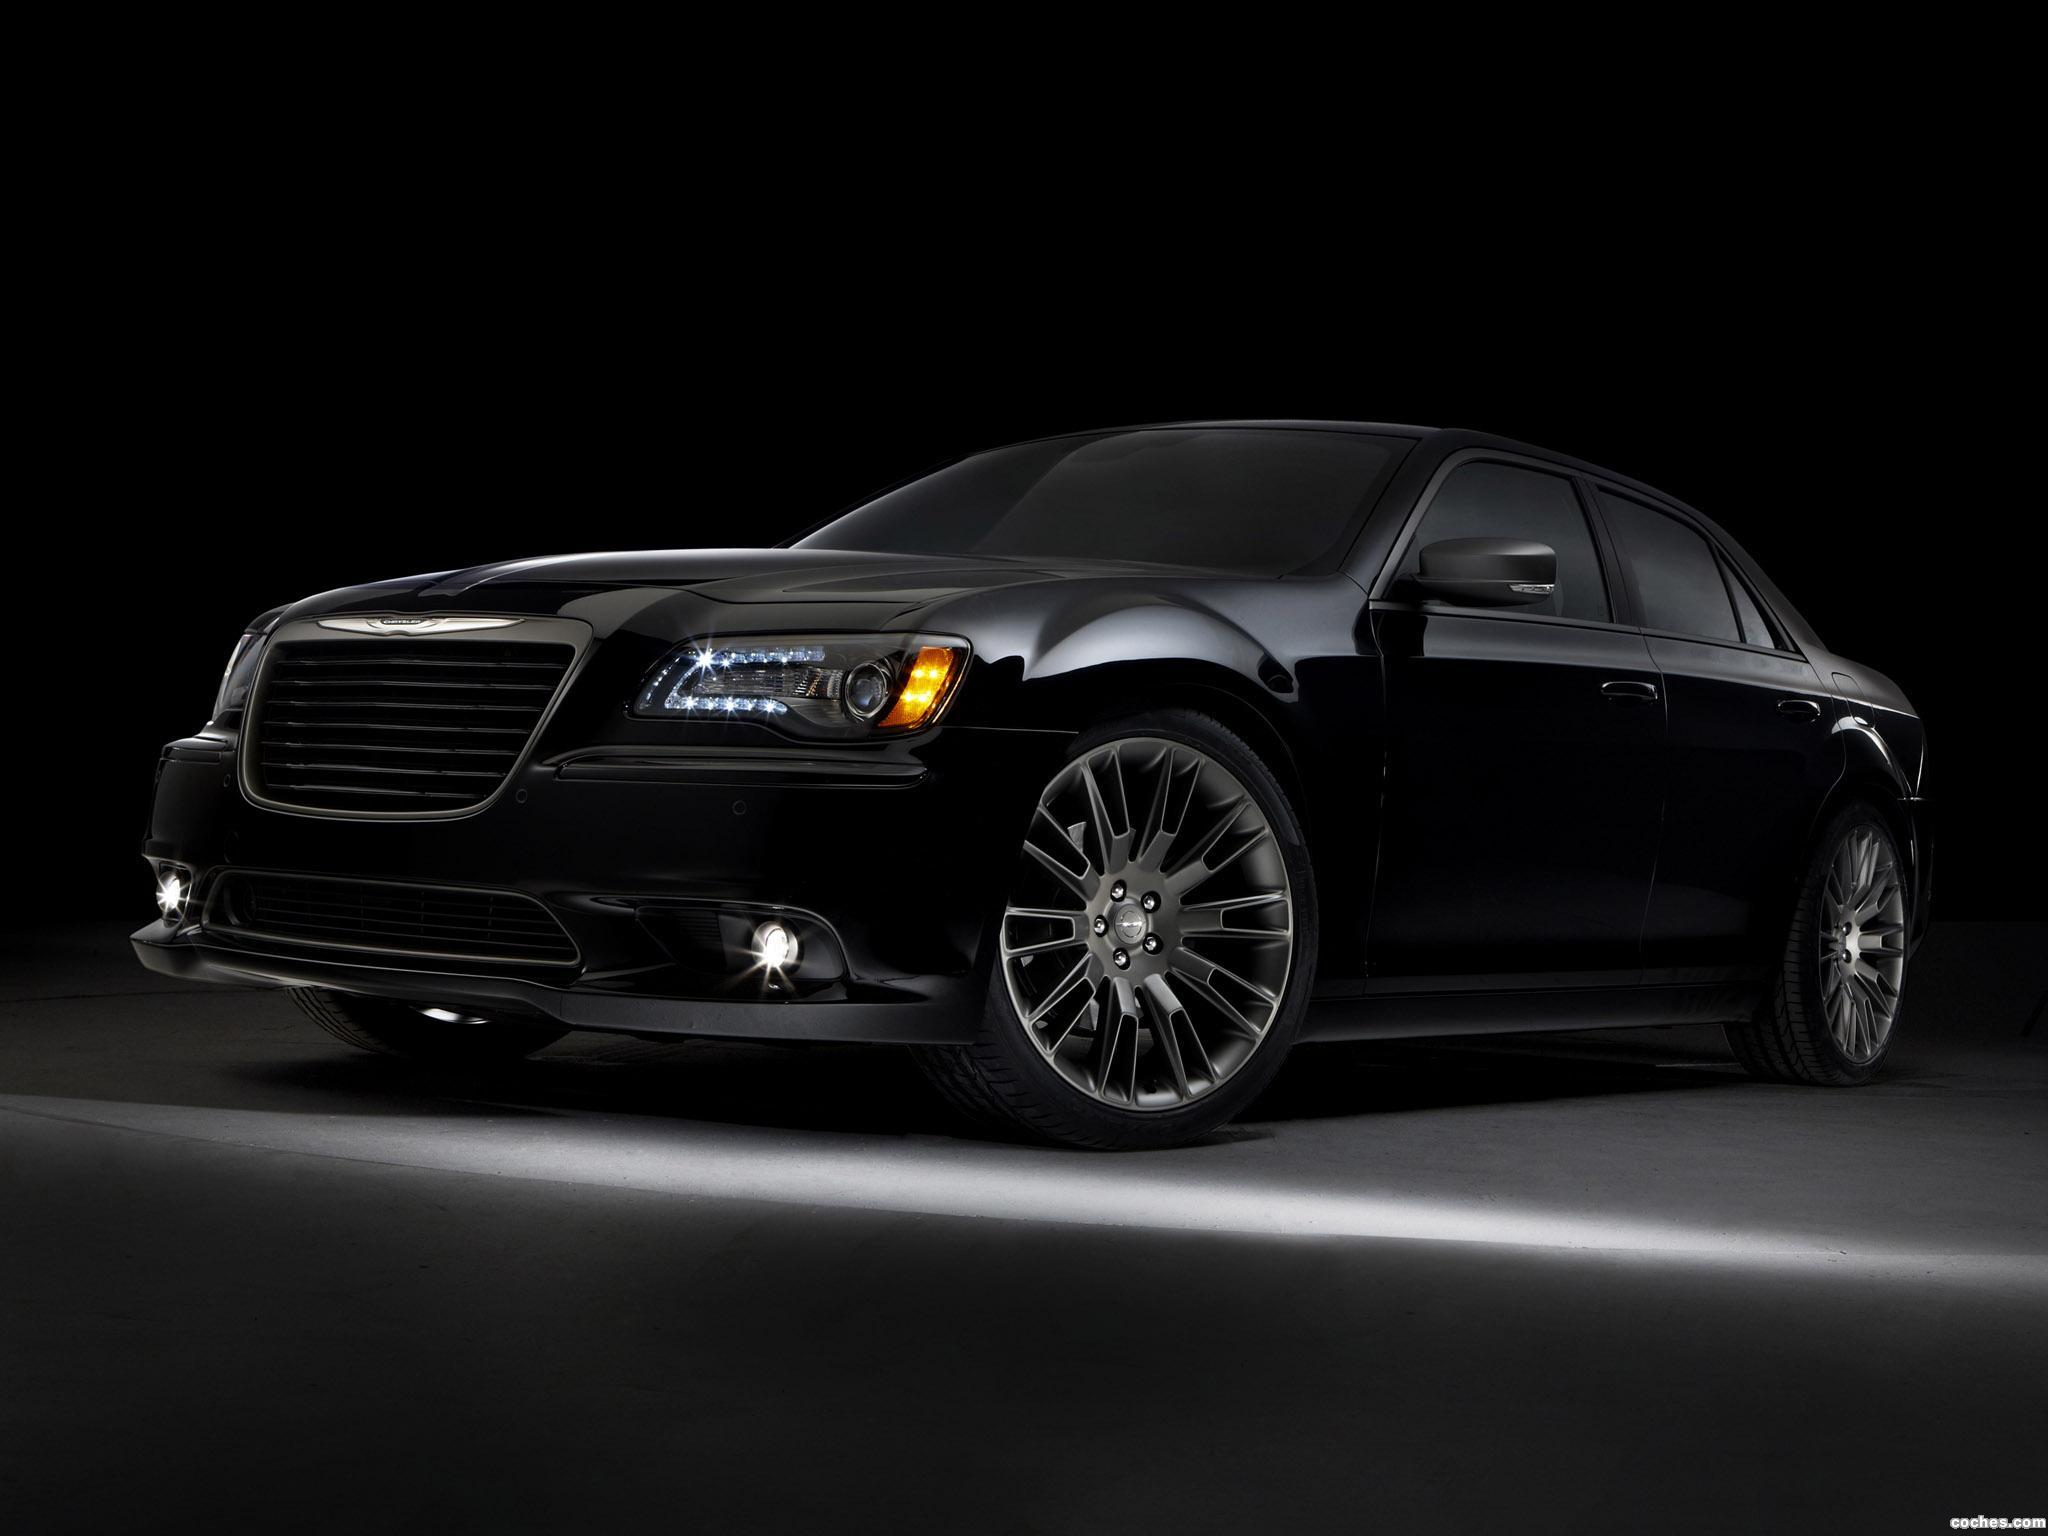 Foto 0 de Chrysler 300 John Varvatos Limited Edition 2013